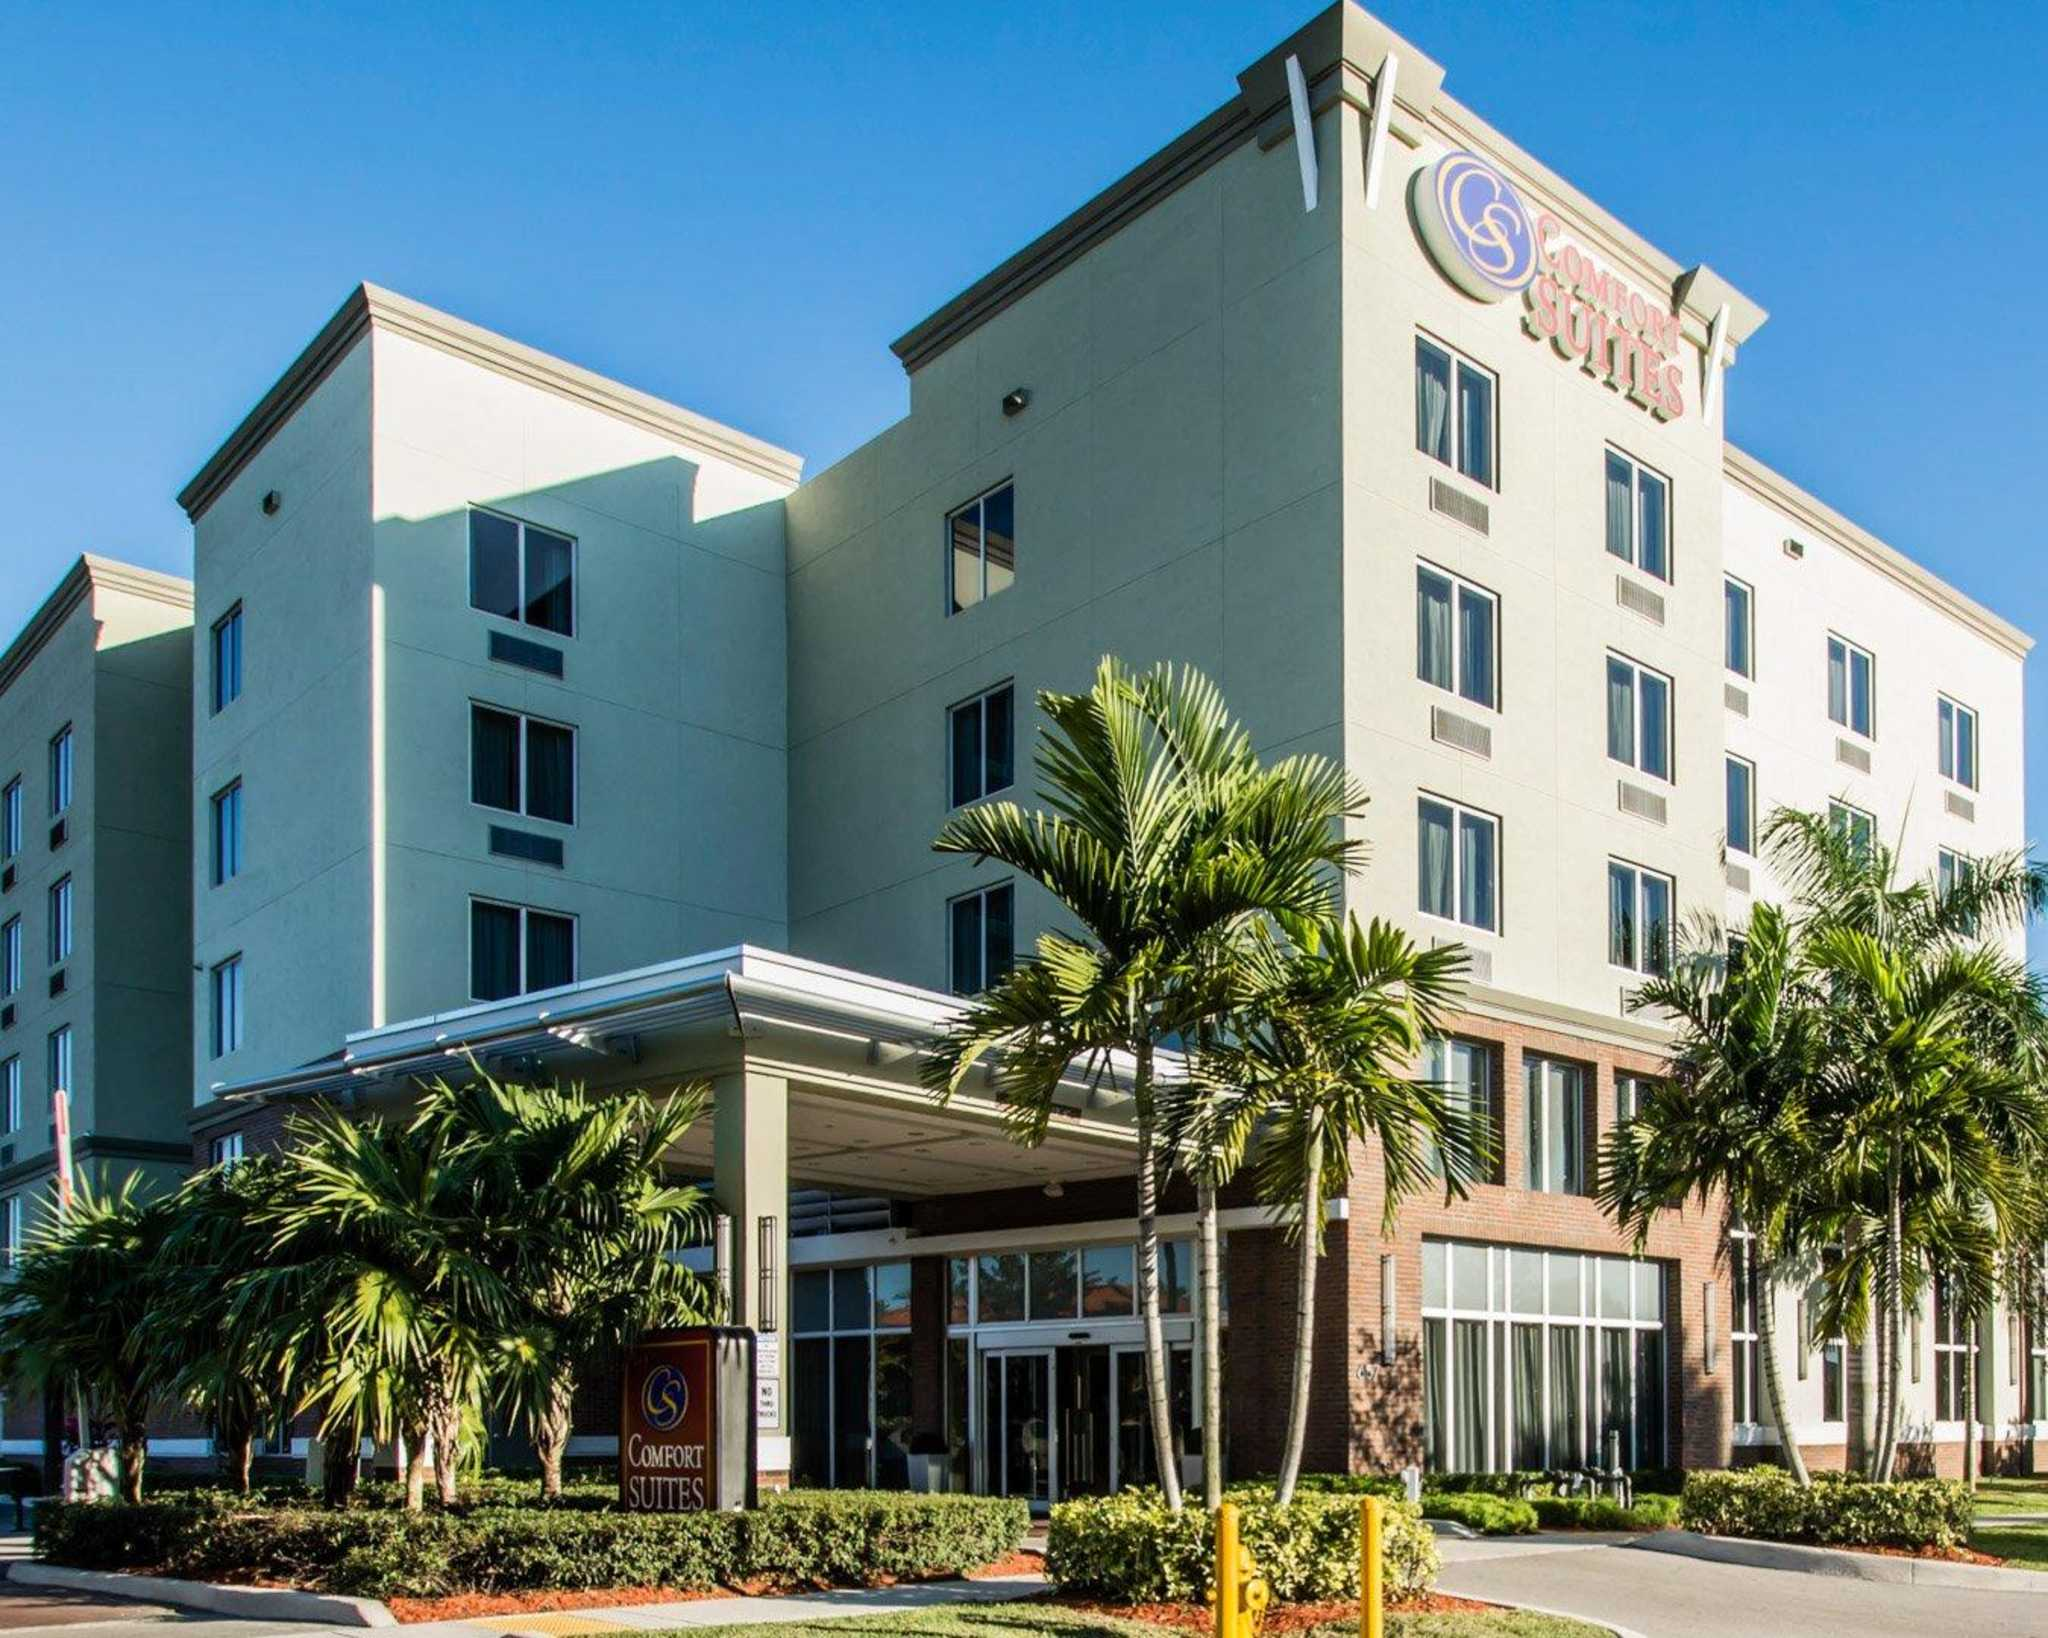 Comfort Suites Miami Airport North, Miami Springs Florida ...